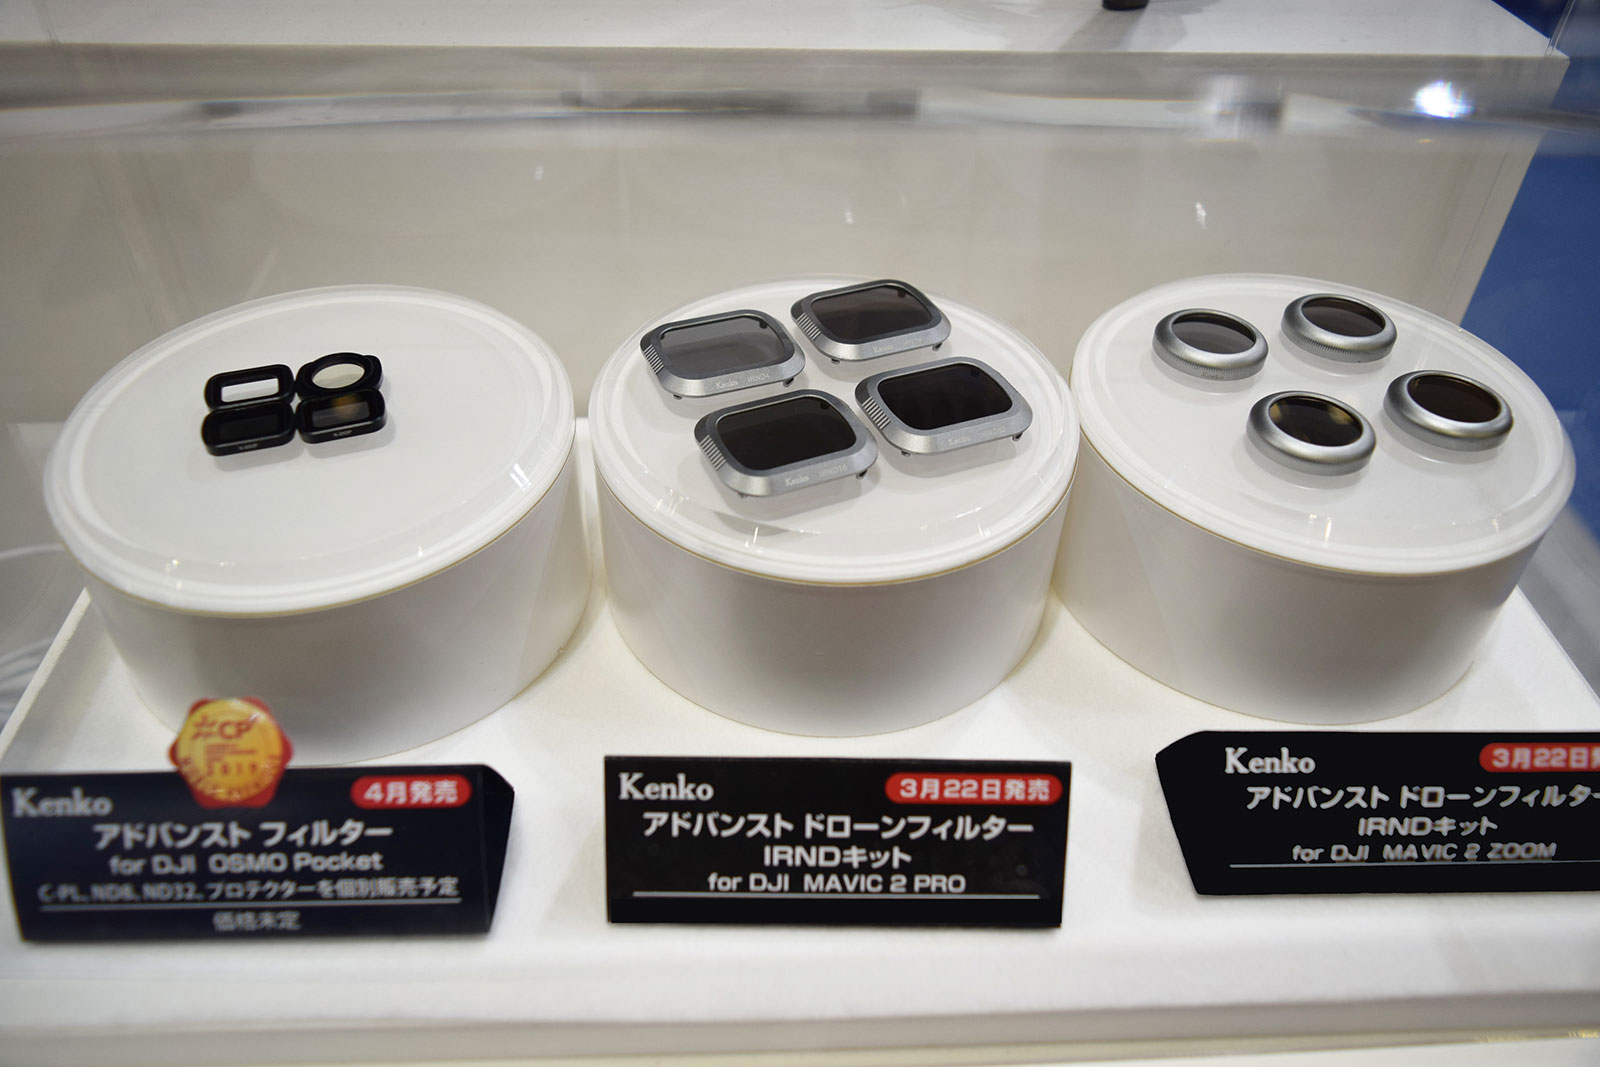 Speaking of new products, Kenko filters corners displayed plenty of it, like the three new Kenko Advanced Drone IRND Filter Kits compatible with DJI OSMO Pocket, DJI Mavic 2 PRO and Zoom drone series.